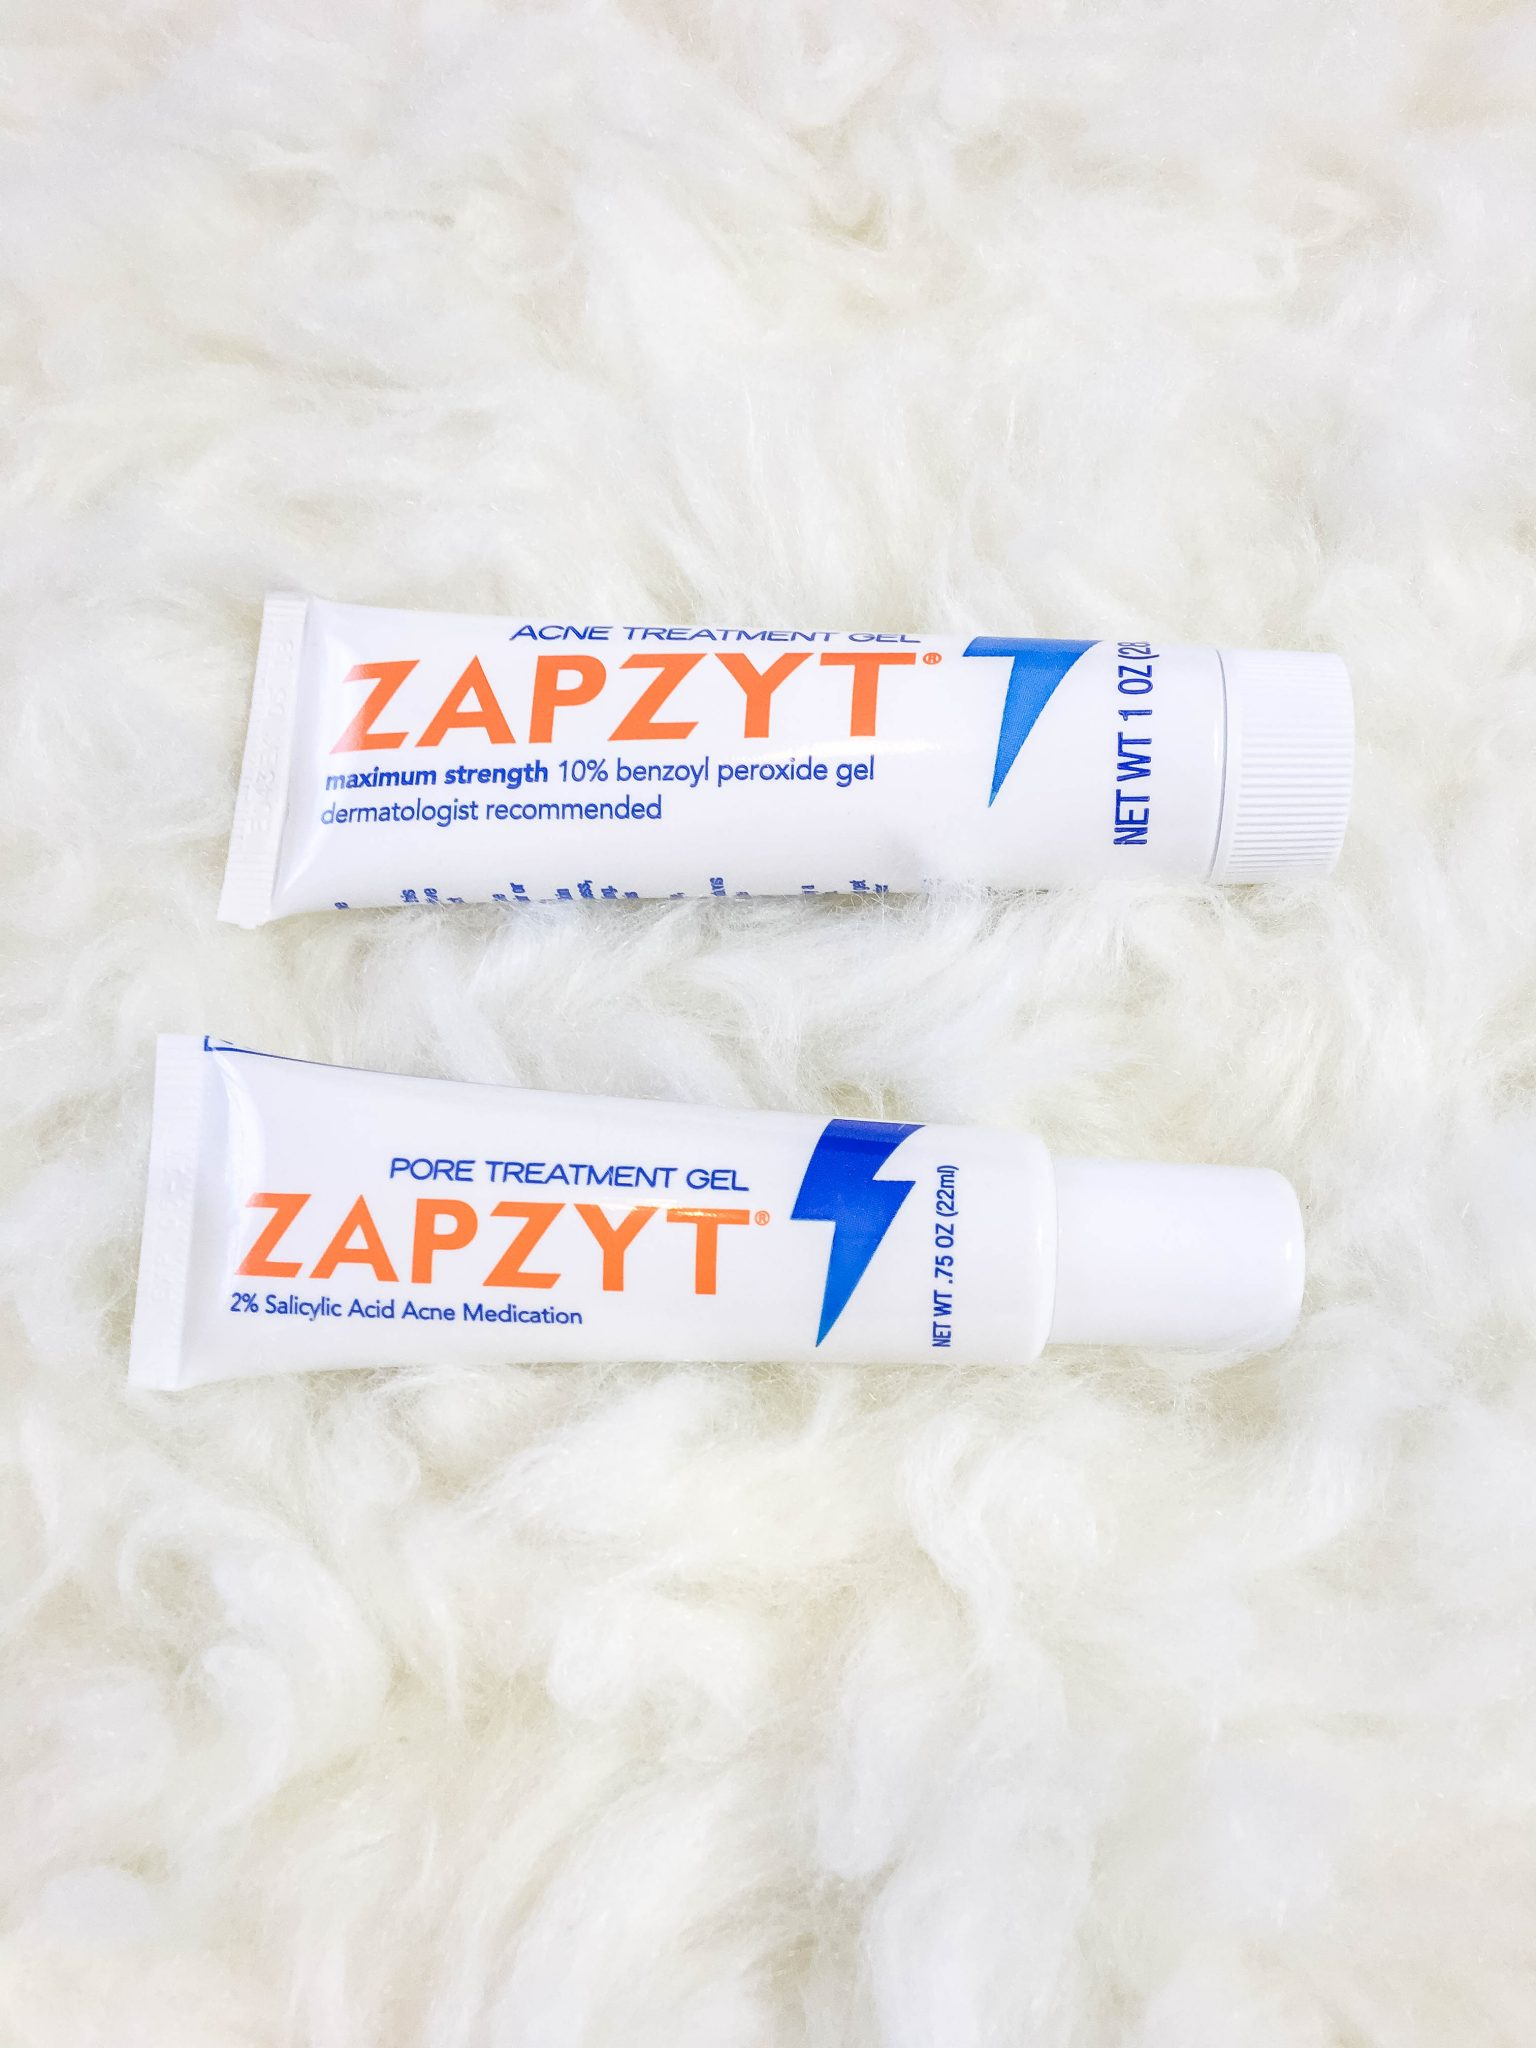 How to Combat Adult Acne with ZAPZYT